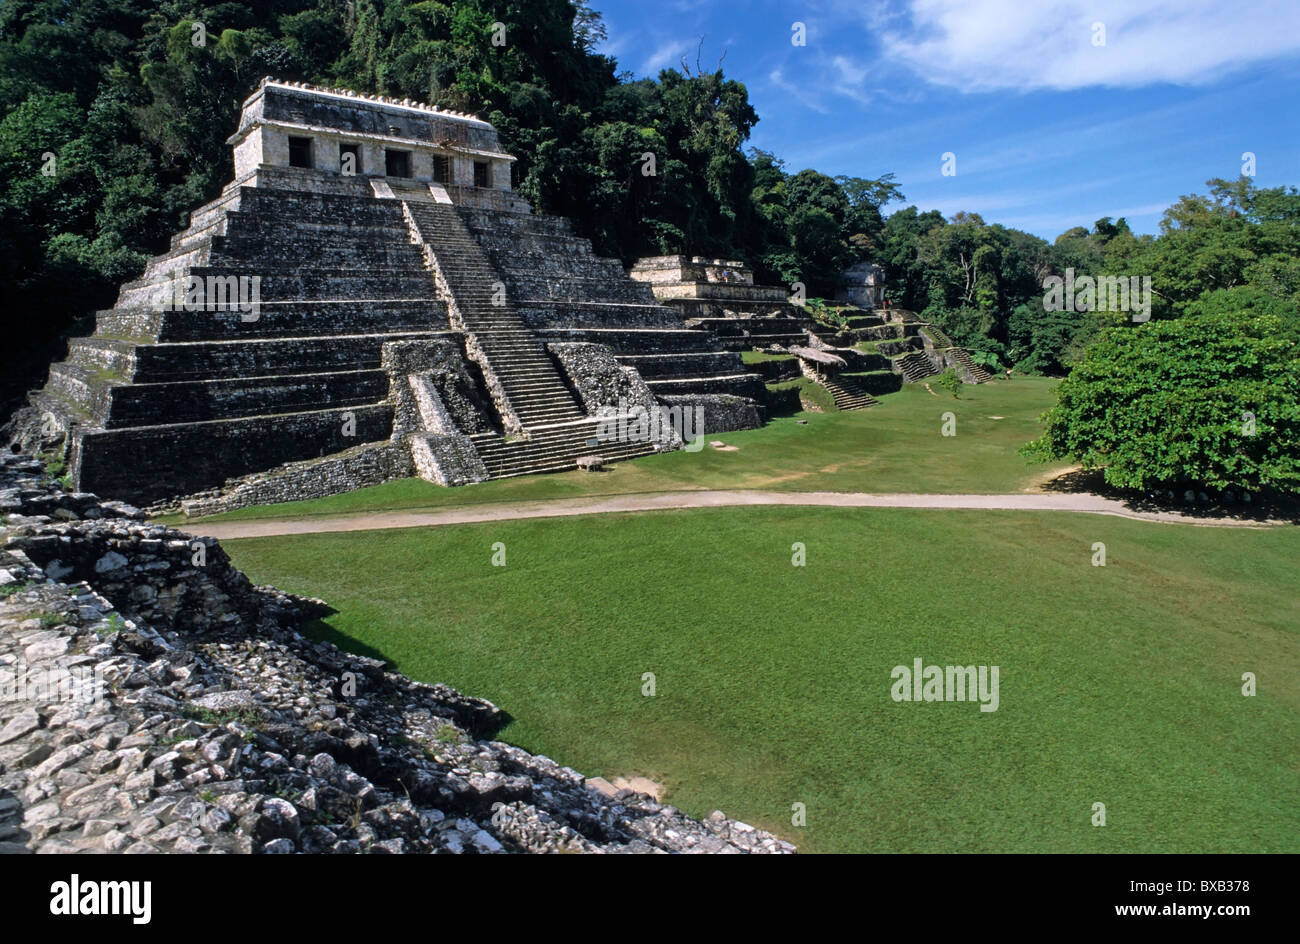 Temple of Inscriptions, part of a group of temples at the Maya ruins of Palenque, Chiapas, Mexico. - Stock Image